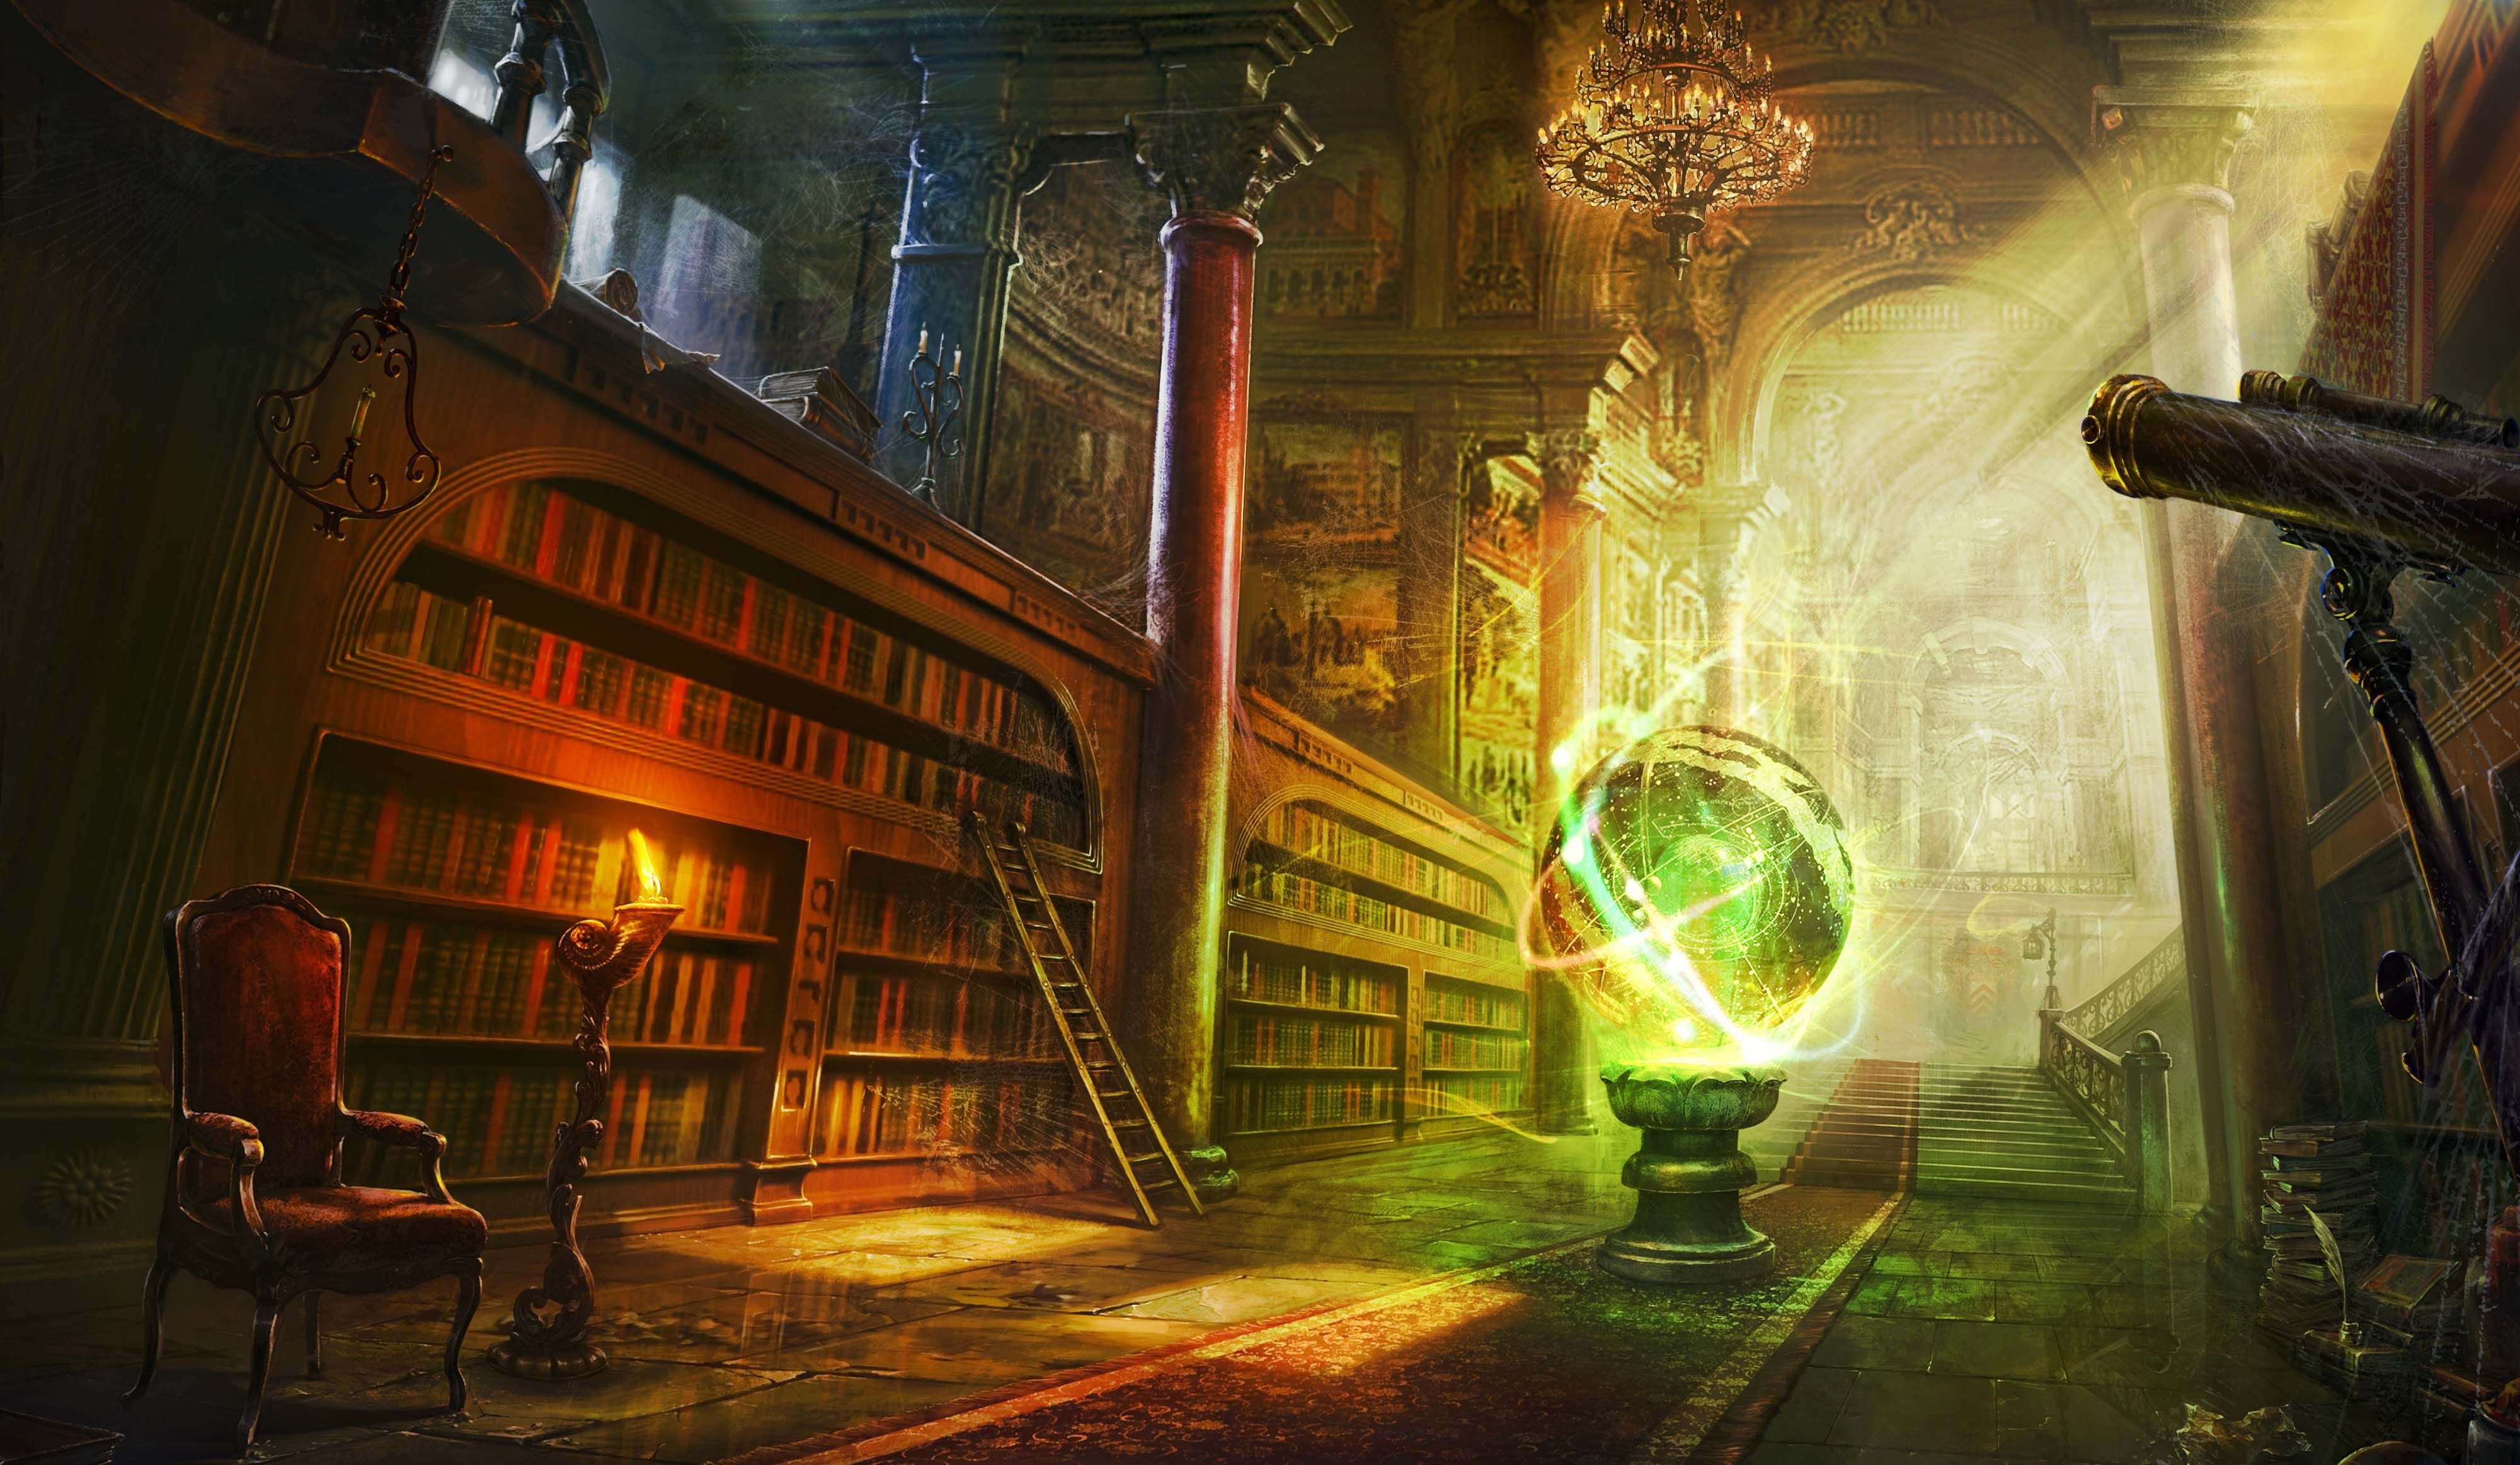 fantasy library background - Google Search | Great ...